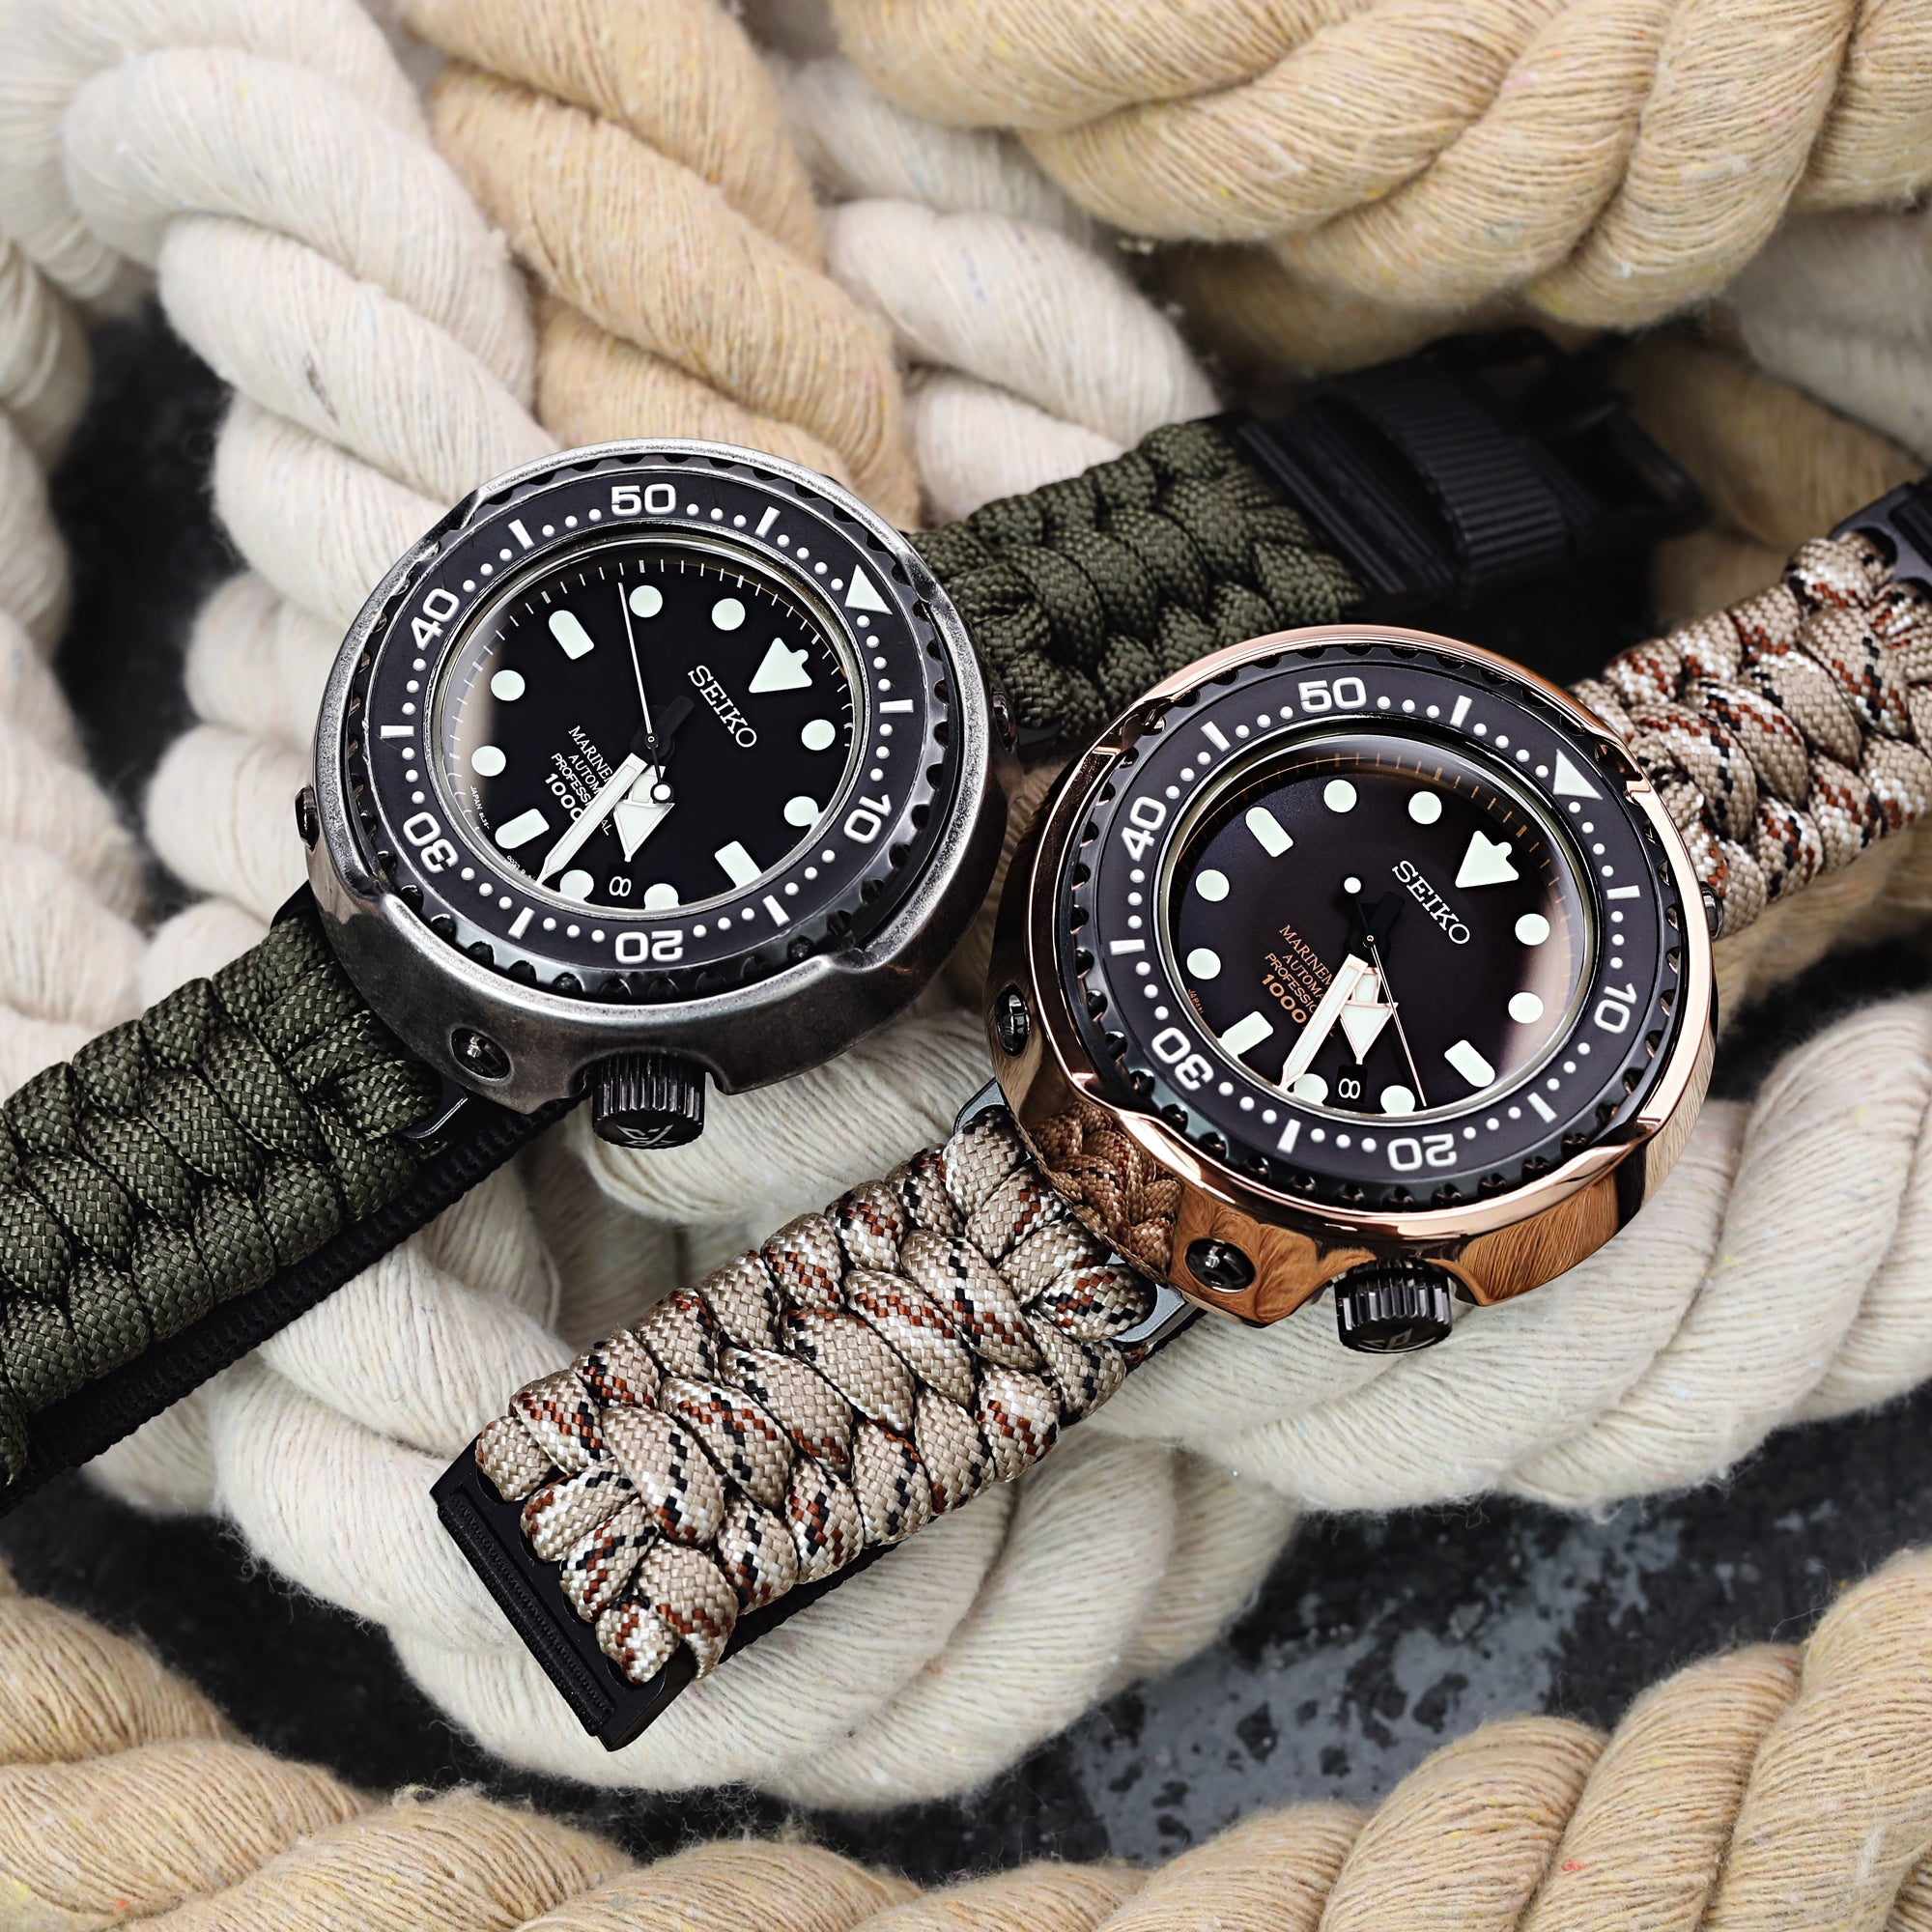 Paracord watch bands by TRILOTAC - Adventure Travel Essentials